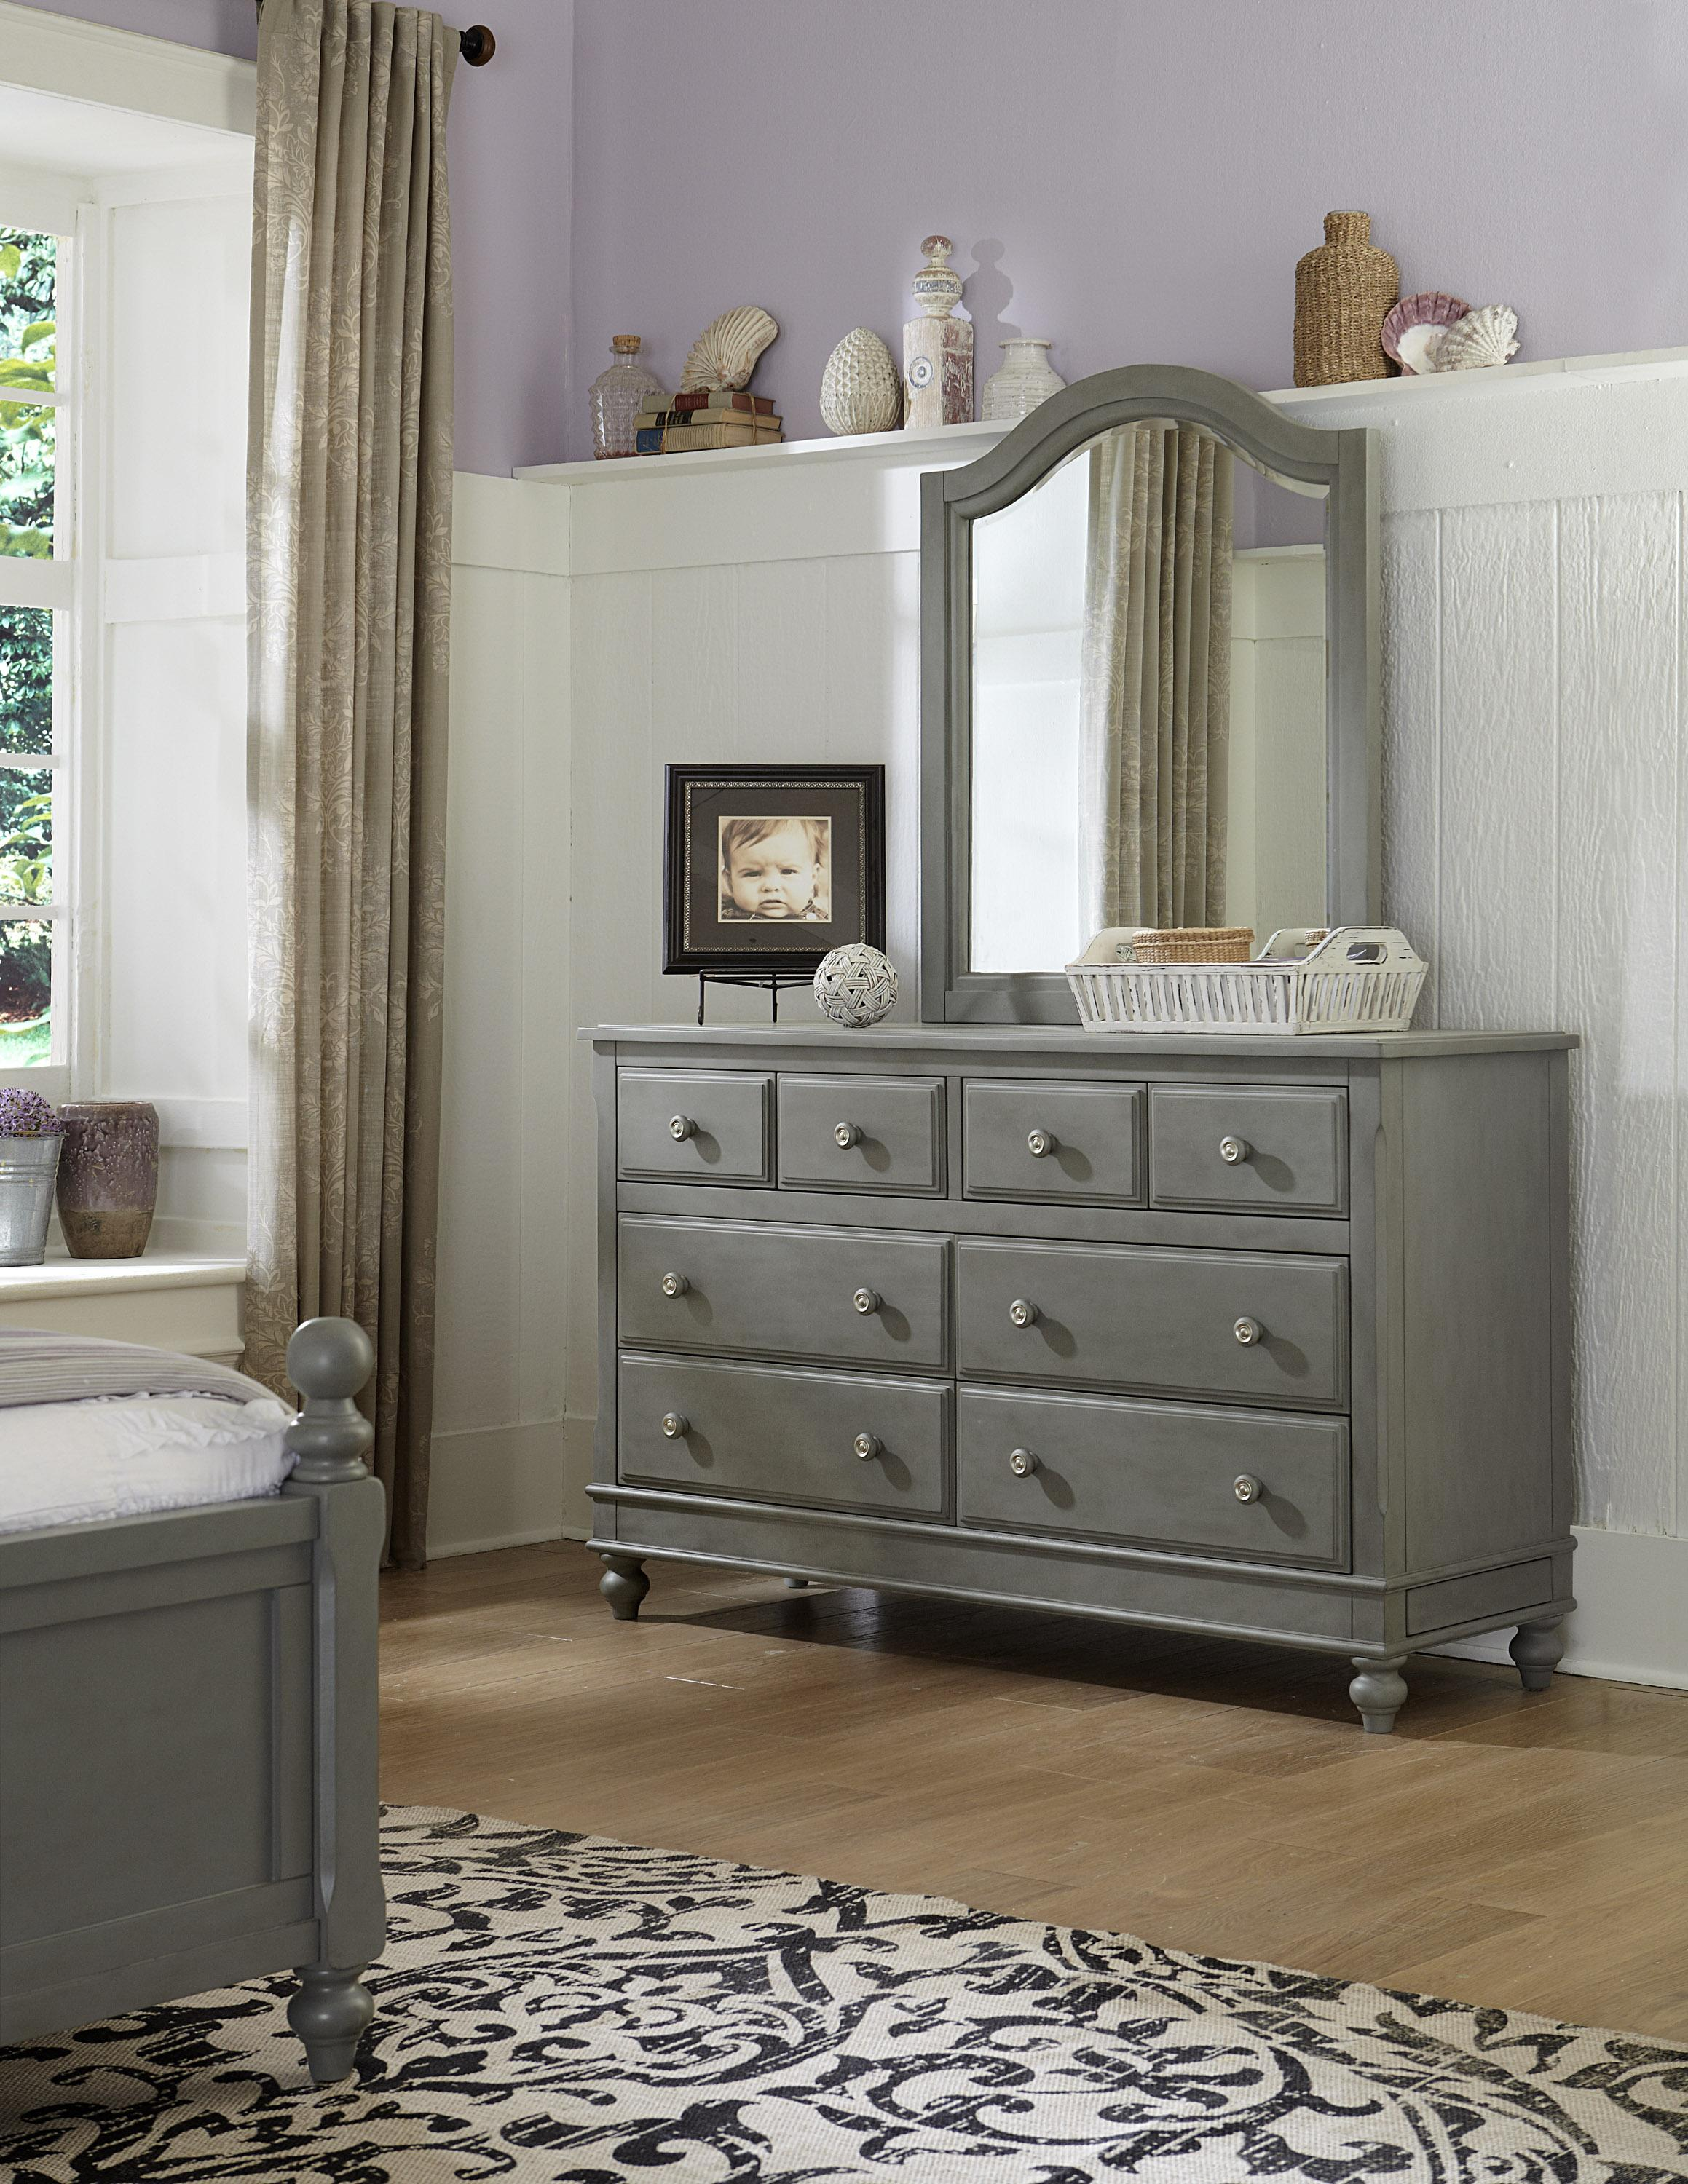 NE Kids Lake House 8 Drawer Dresser + Arched Mirror - Item Number: 2500+2510